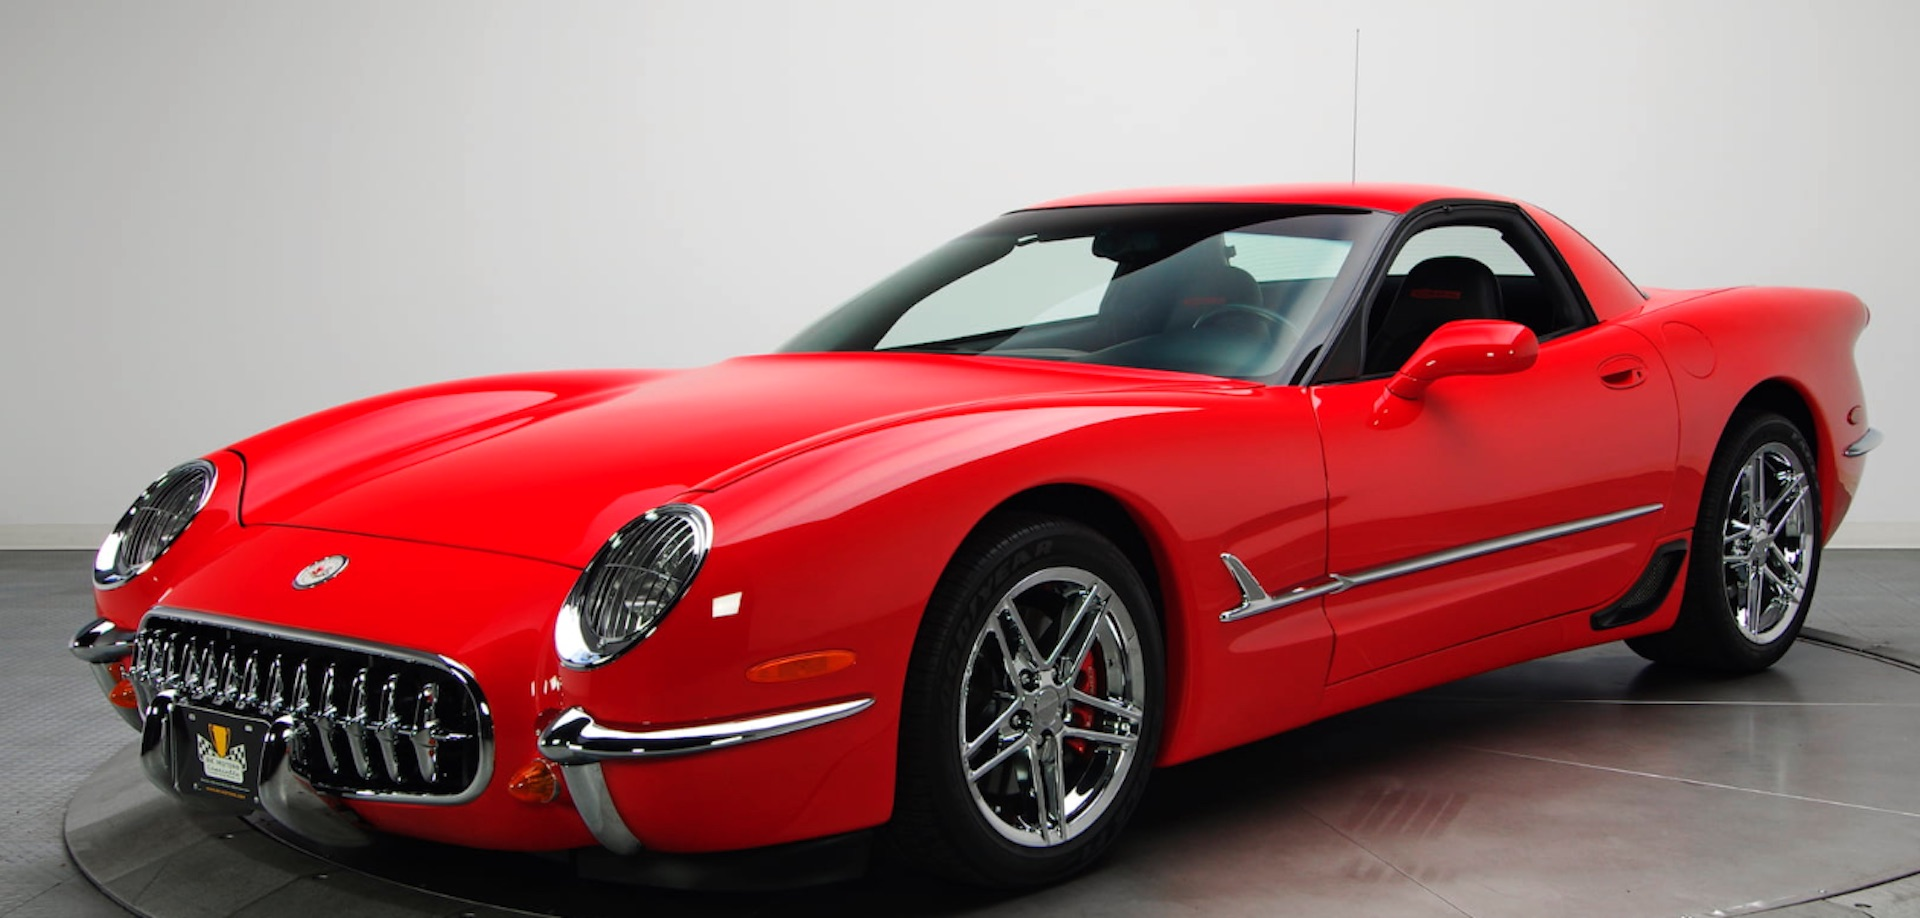 Rebodied C5 Corvette Z06 is retro in all the right places